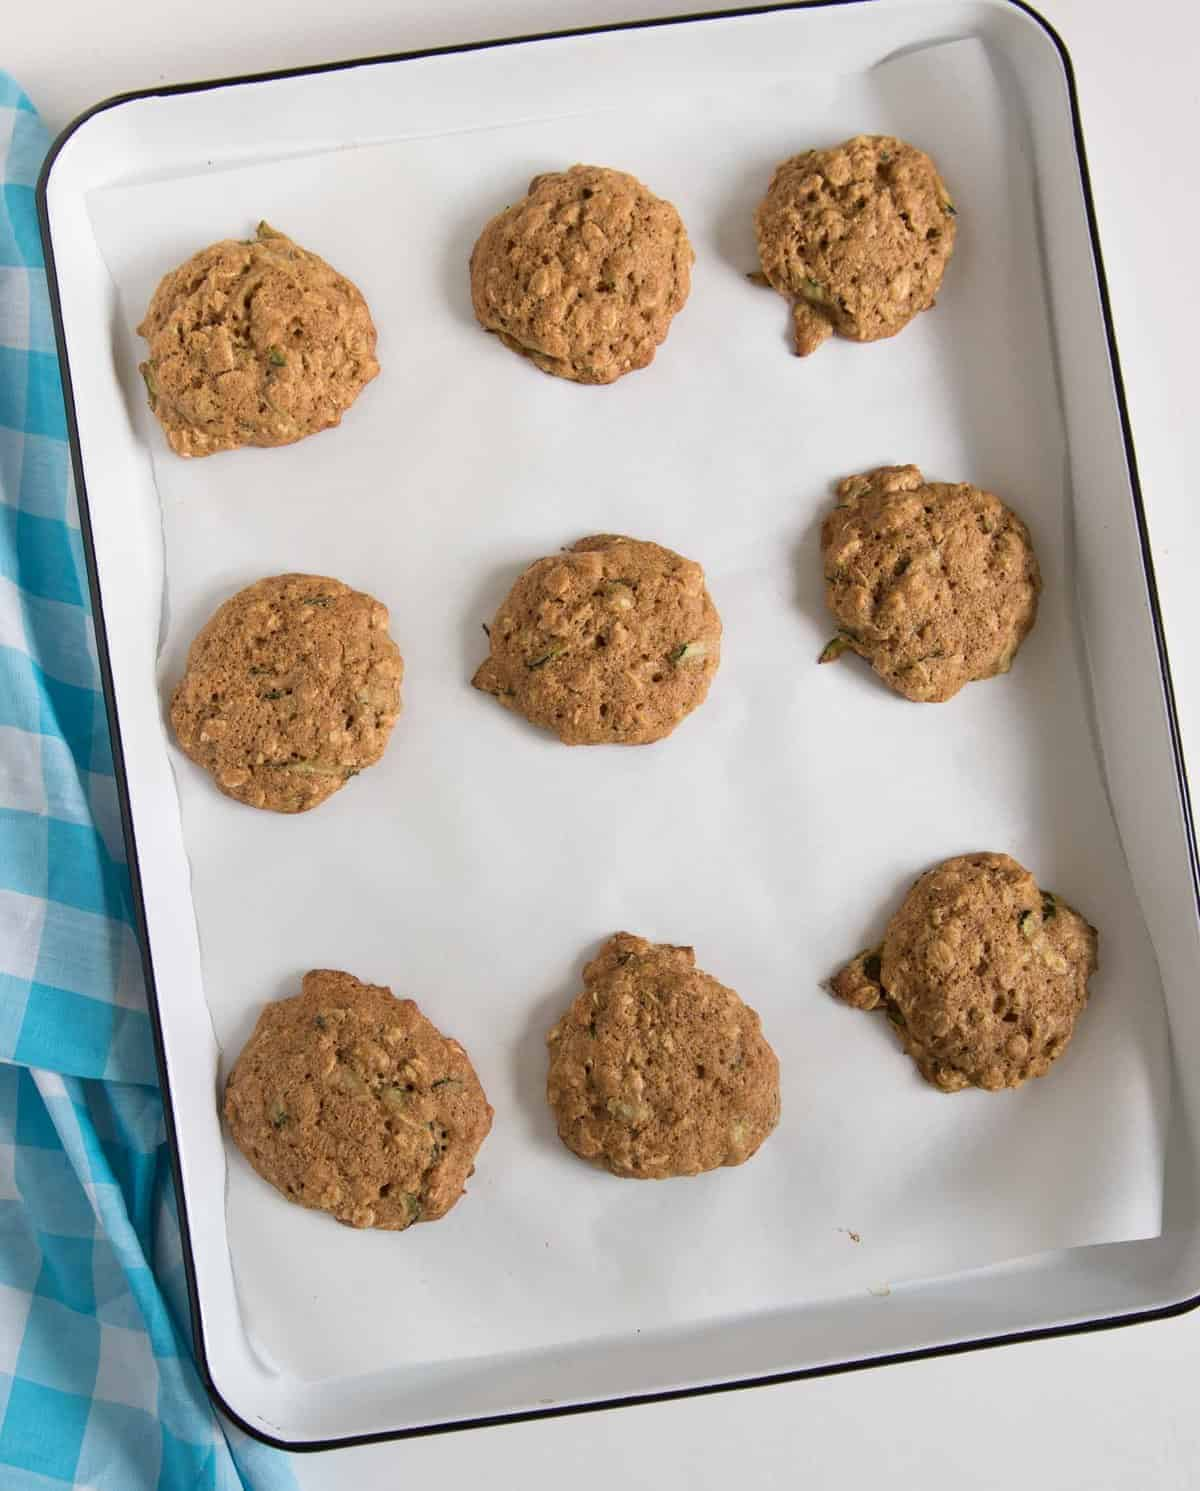 Zucchini Oatmeal Cookies are surprisingly light and fluffy cookies made from oats and shredded zucchini.